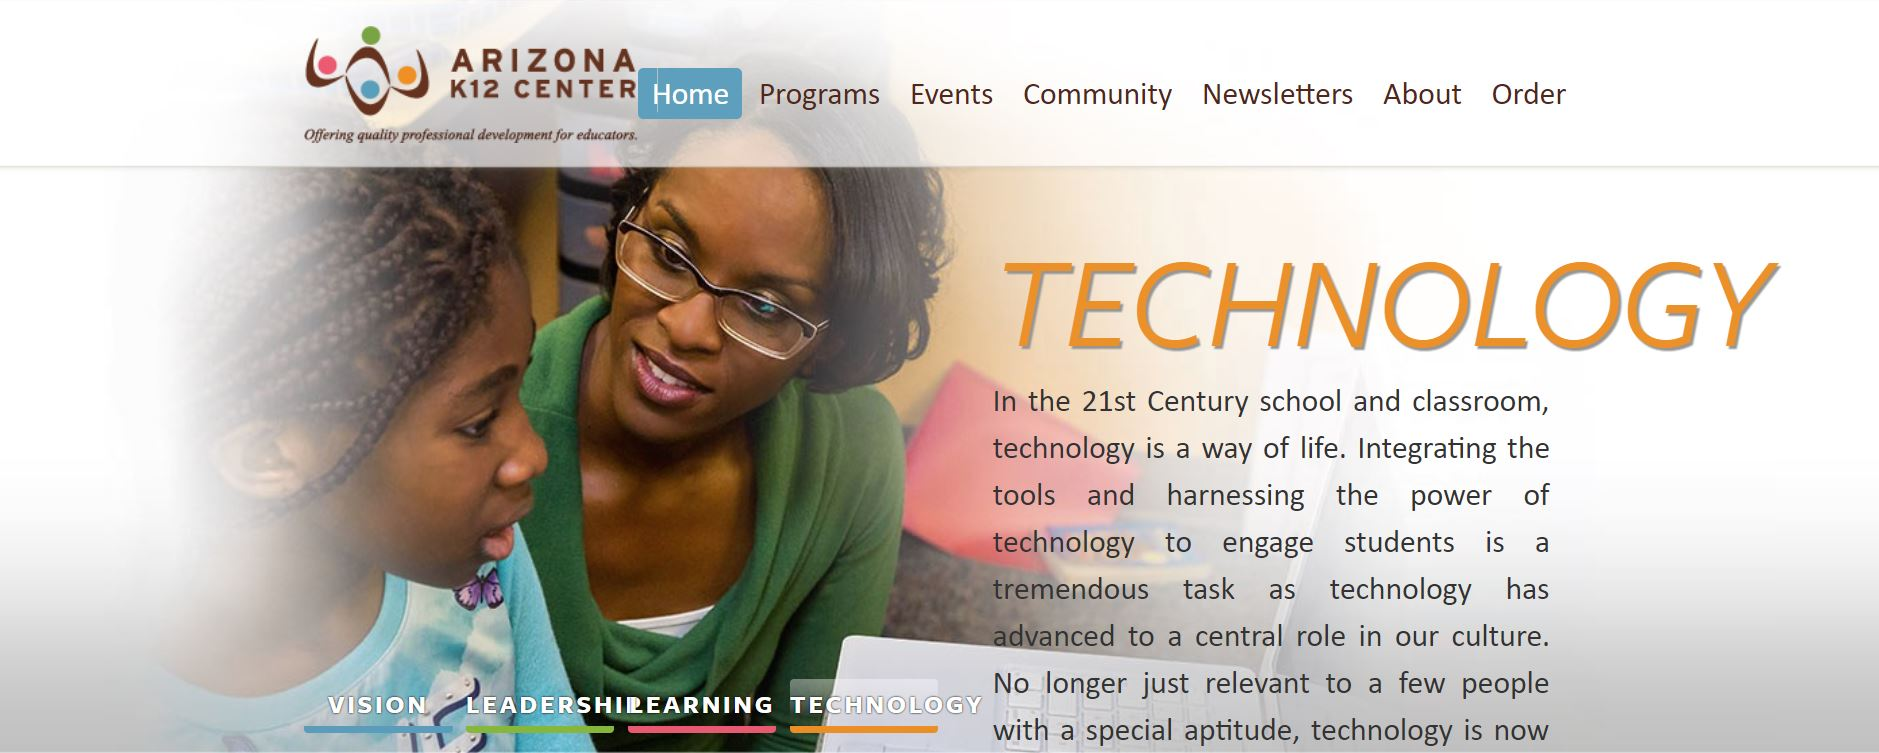 AZ K12 Center Web Page Image